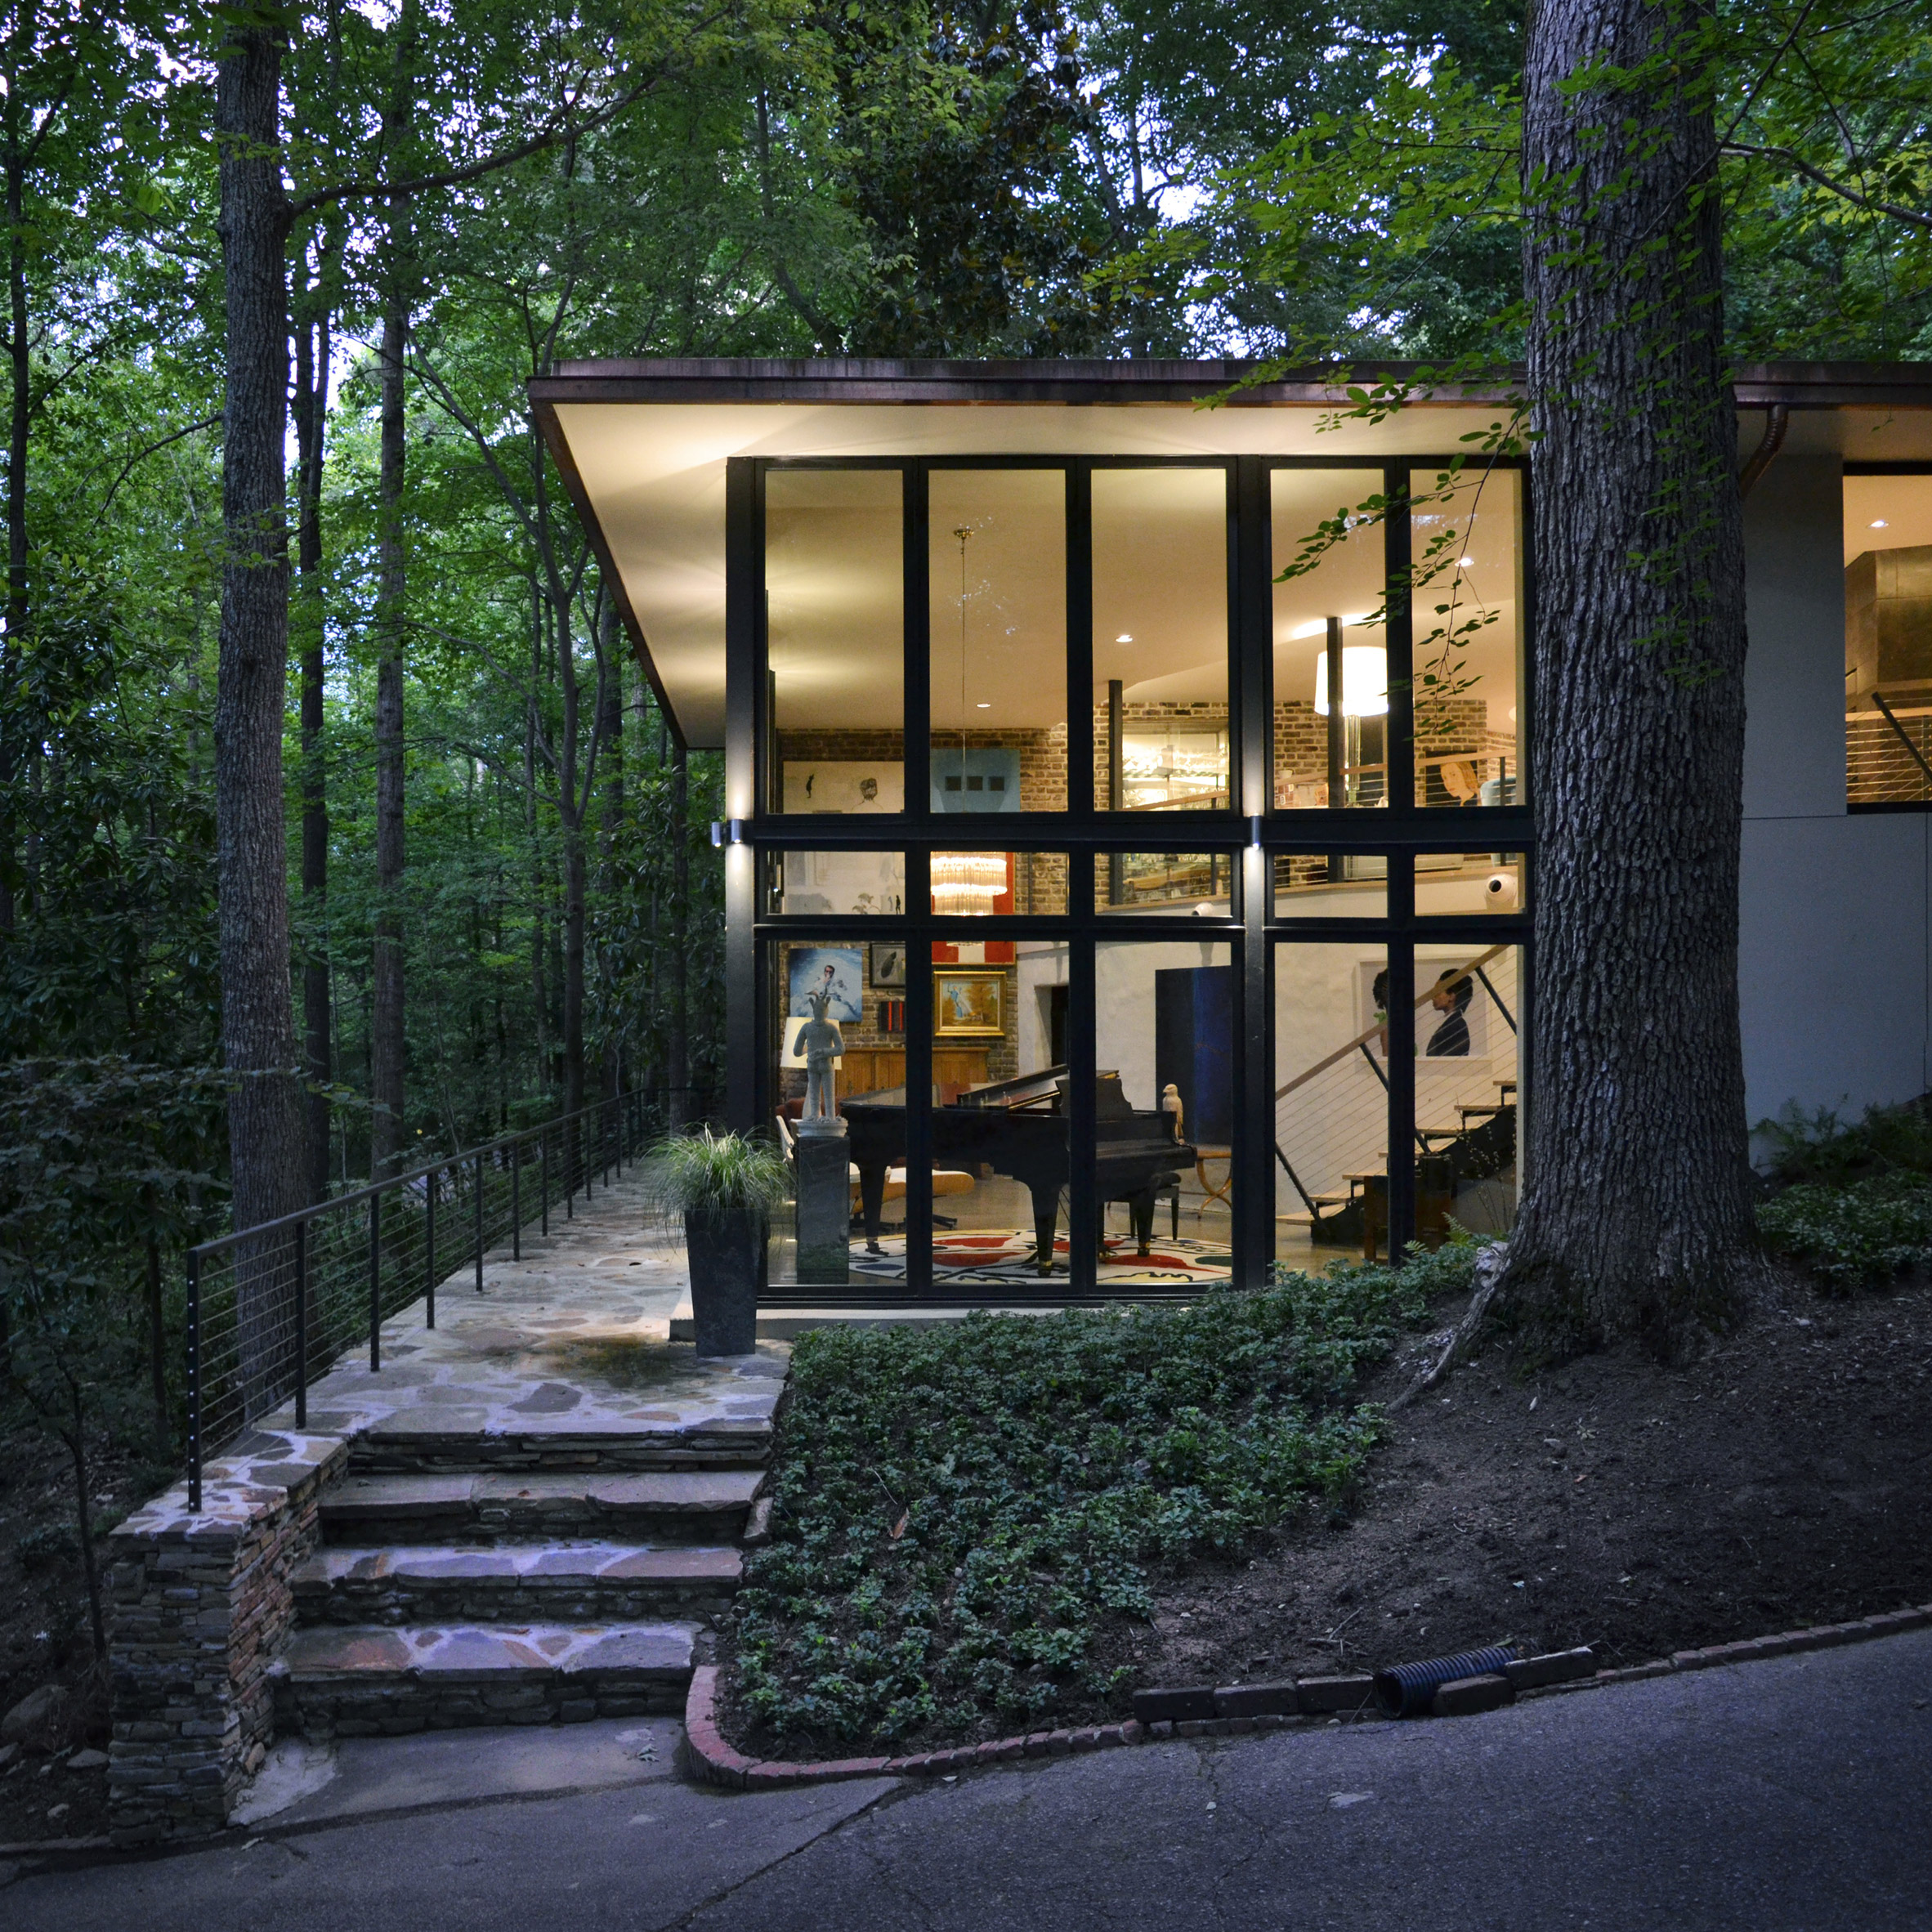 Design Initiative overhauls modernist Alabama home with new staircase and more windows